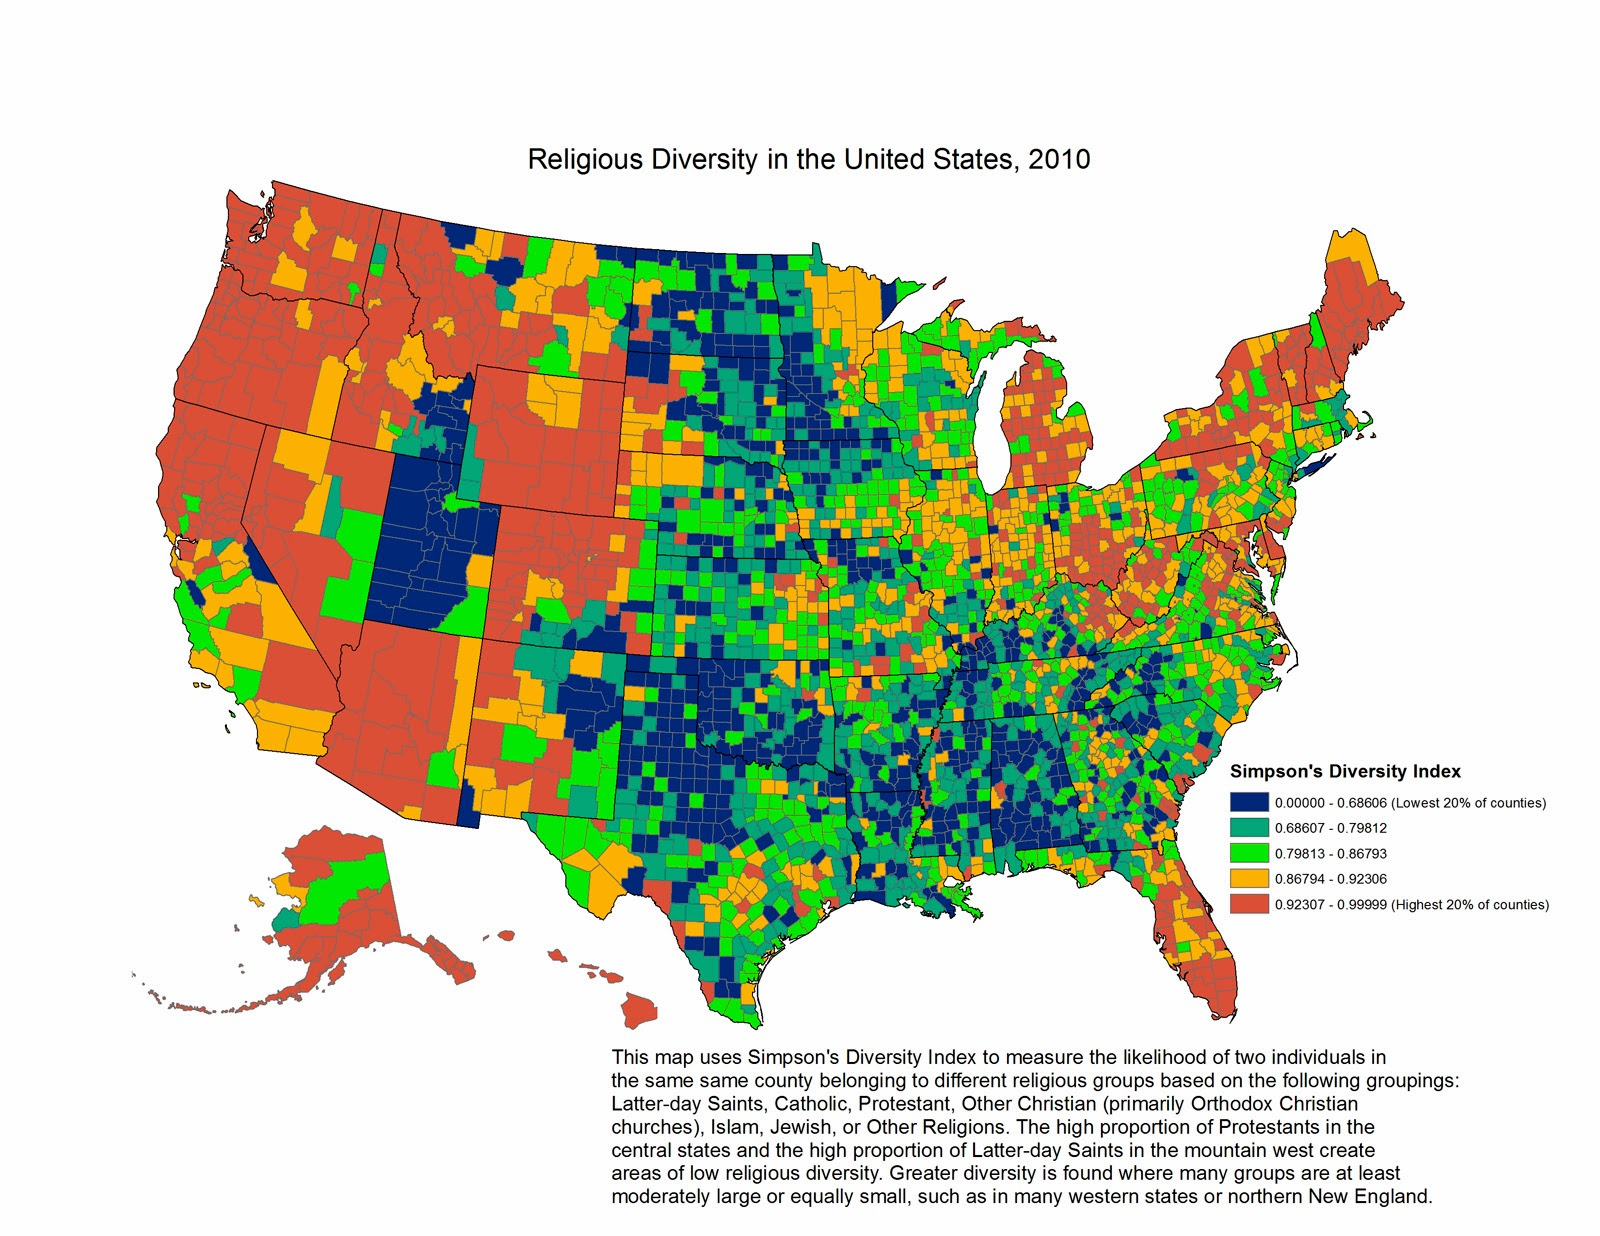 blue counties have little religious diversity red ones a great deal